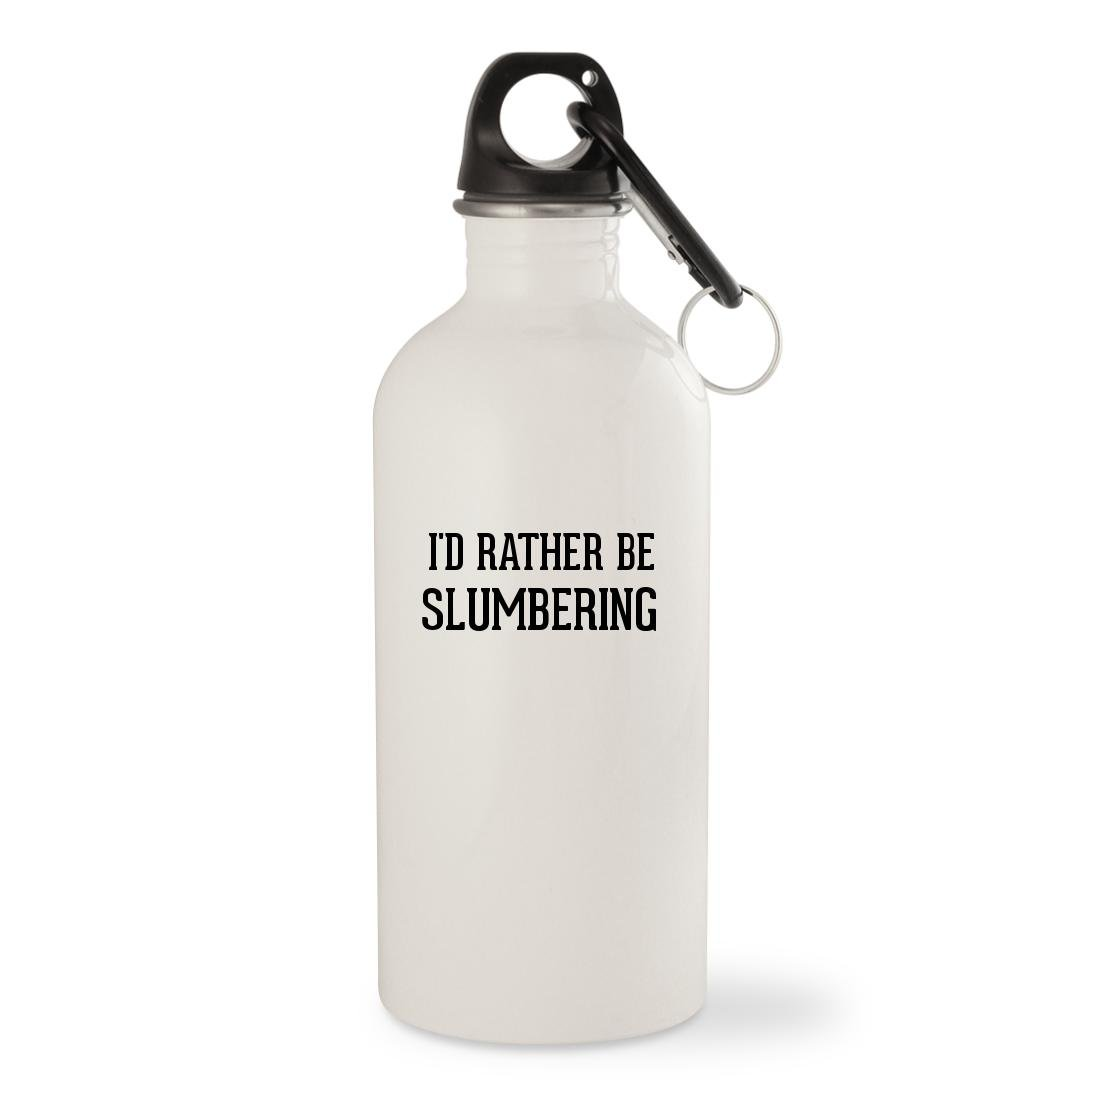 I'd Rather Be SLUMBERING - White 20oz Stainless Steel Water Bottle with Carabiner